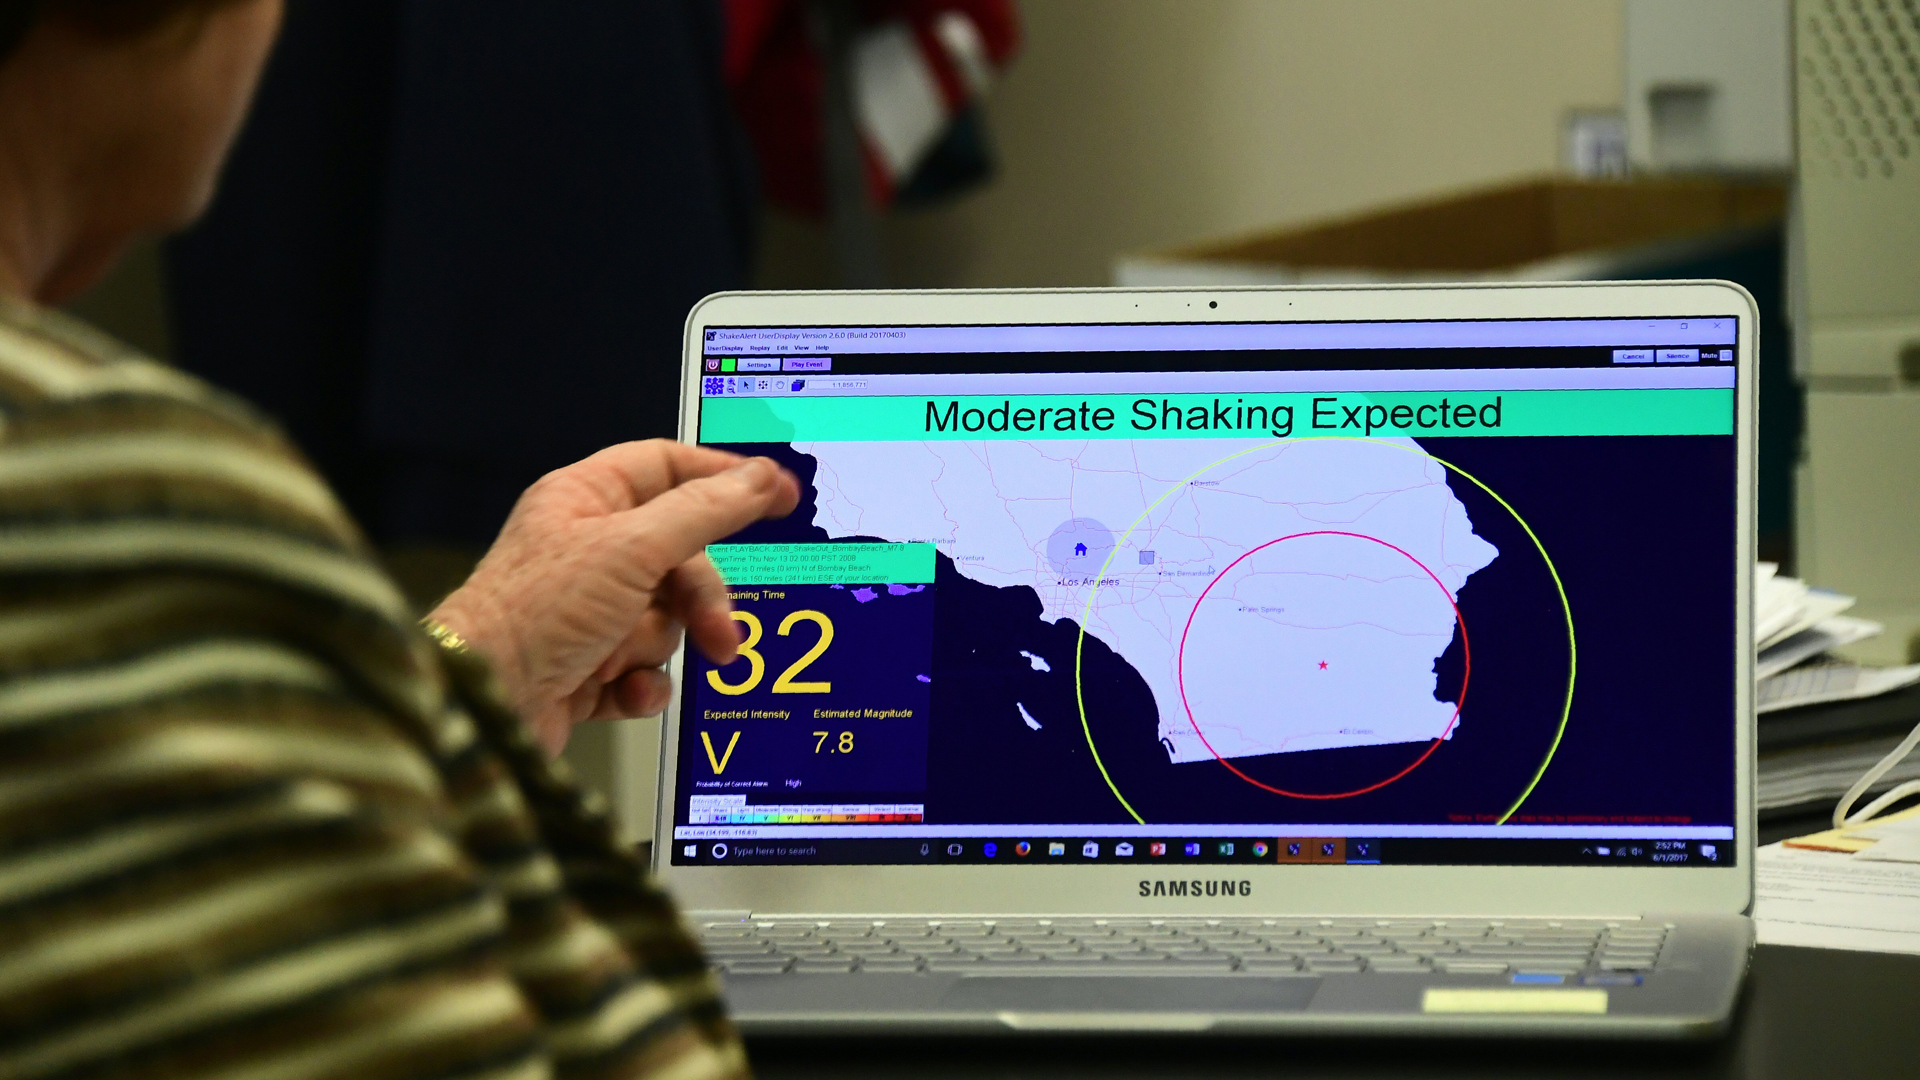 In this file photo, Margaret Vinci, manager of the Seismological Laboratory at Caltech points to a shake alert user display on a laptop screen, set for a limited release on June 1, 2017, at the Caltech Seismological Laboratory in Pasadena. (Credit: FREDERIC J. BROWN/AFP/Getty Images)